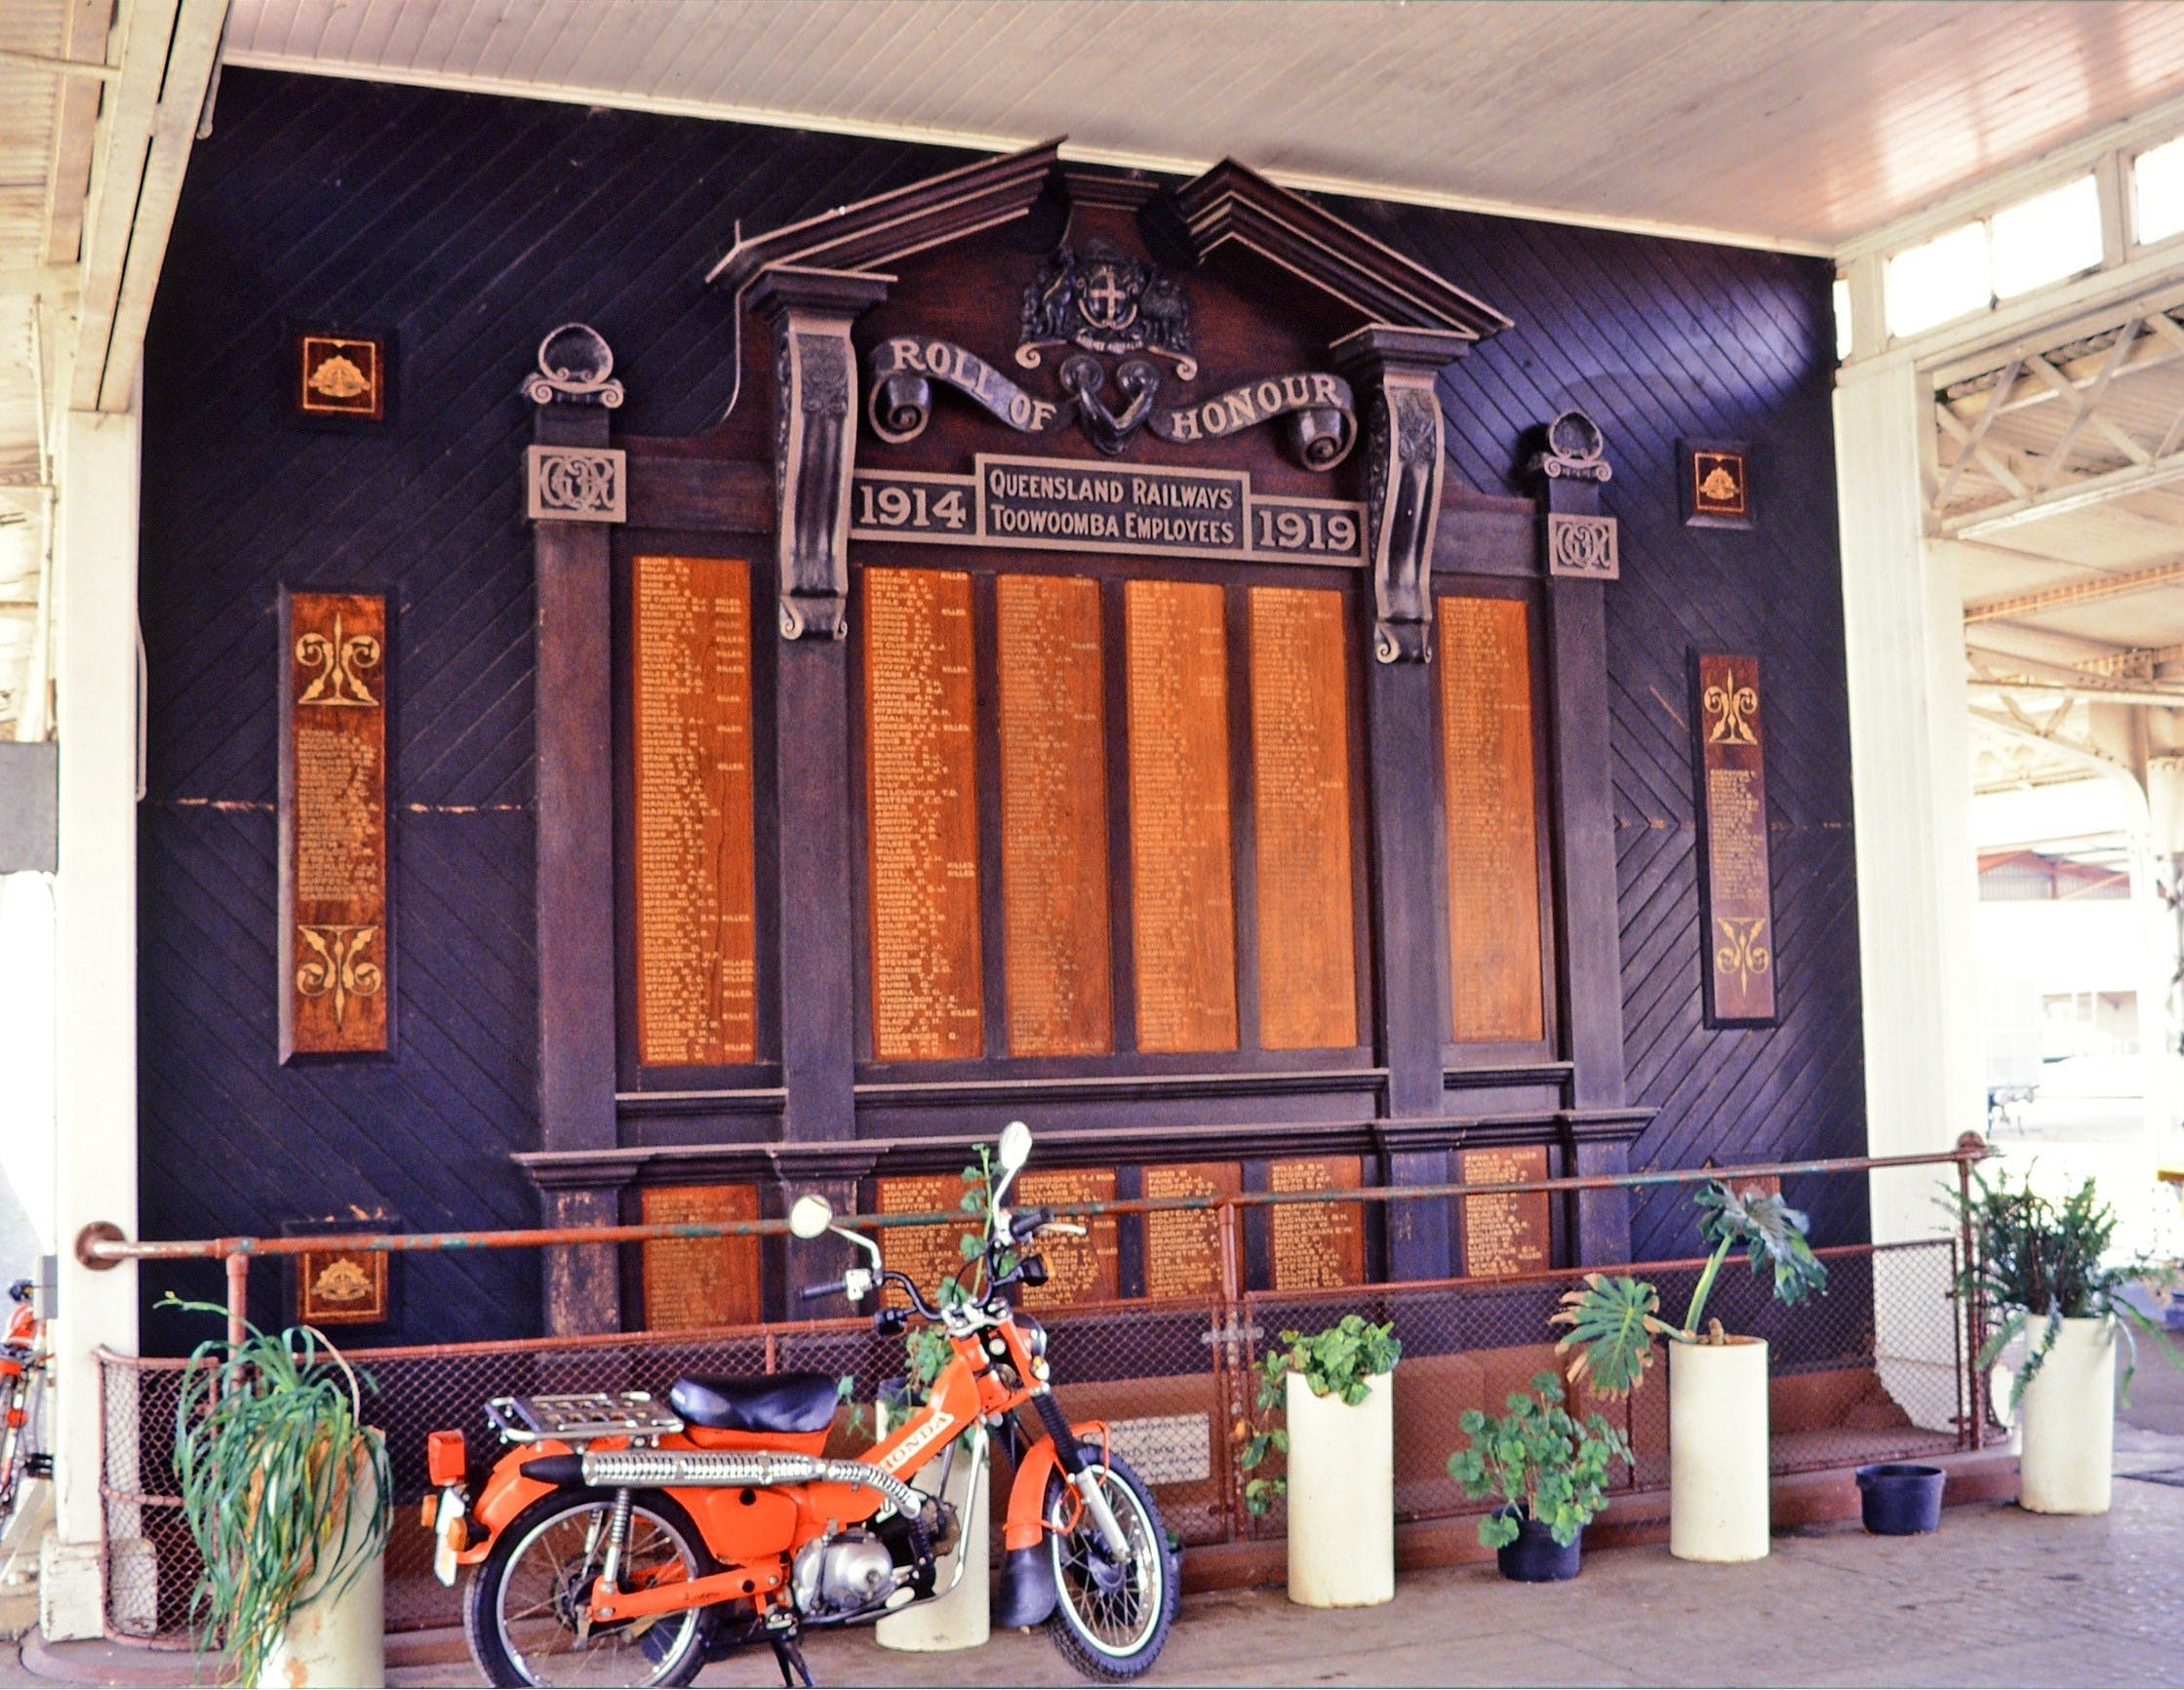 Toowoomba Railway Station, Memorial Honour Board Logo and Images